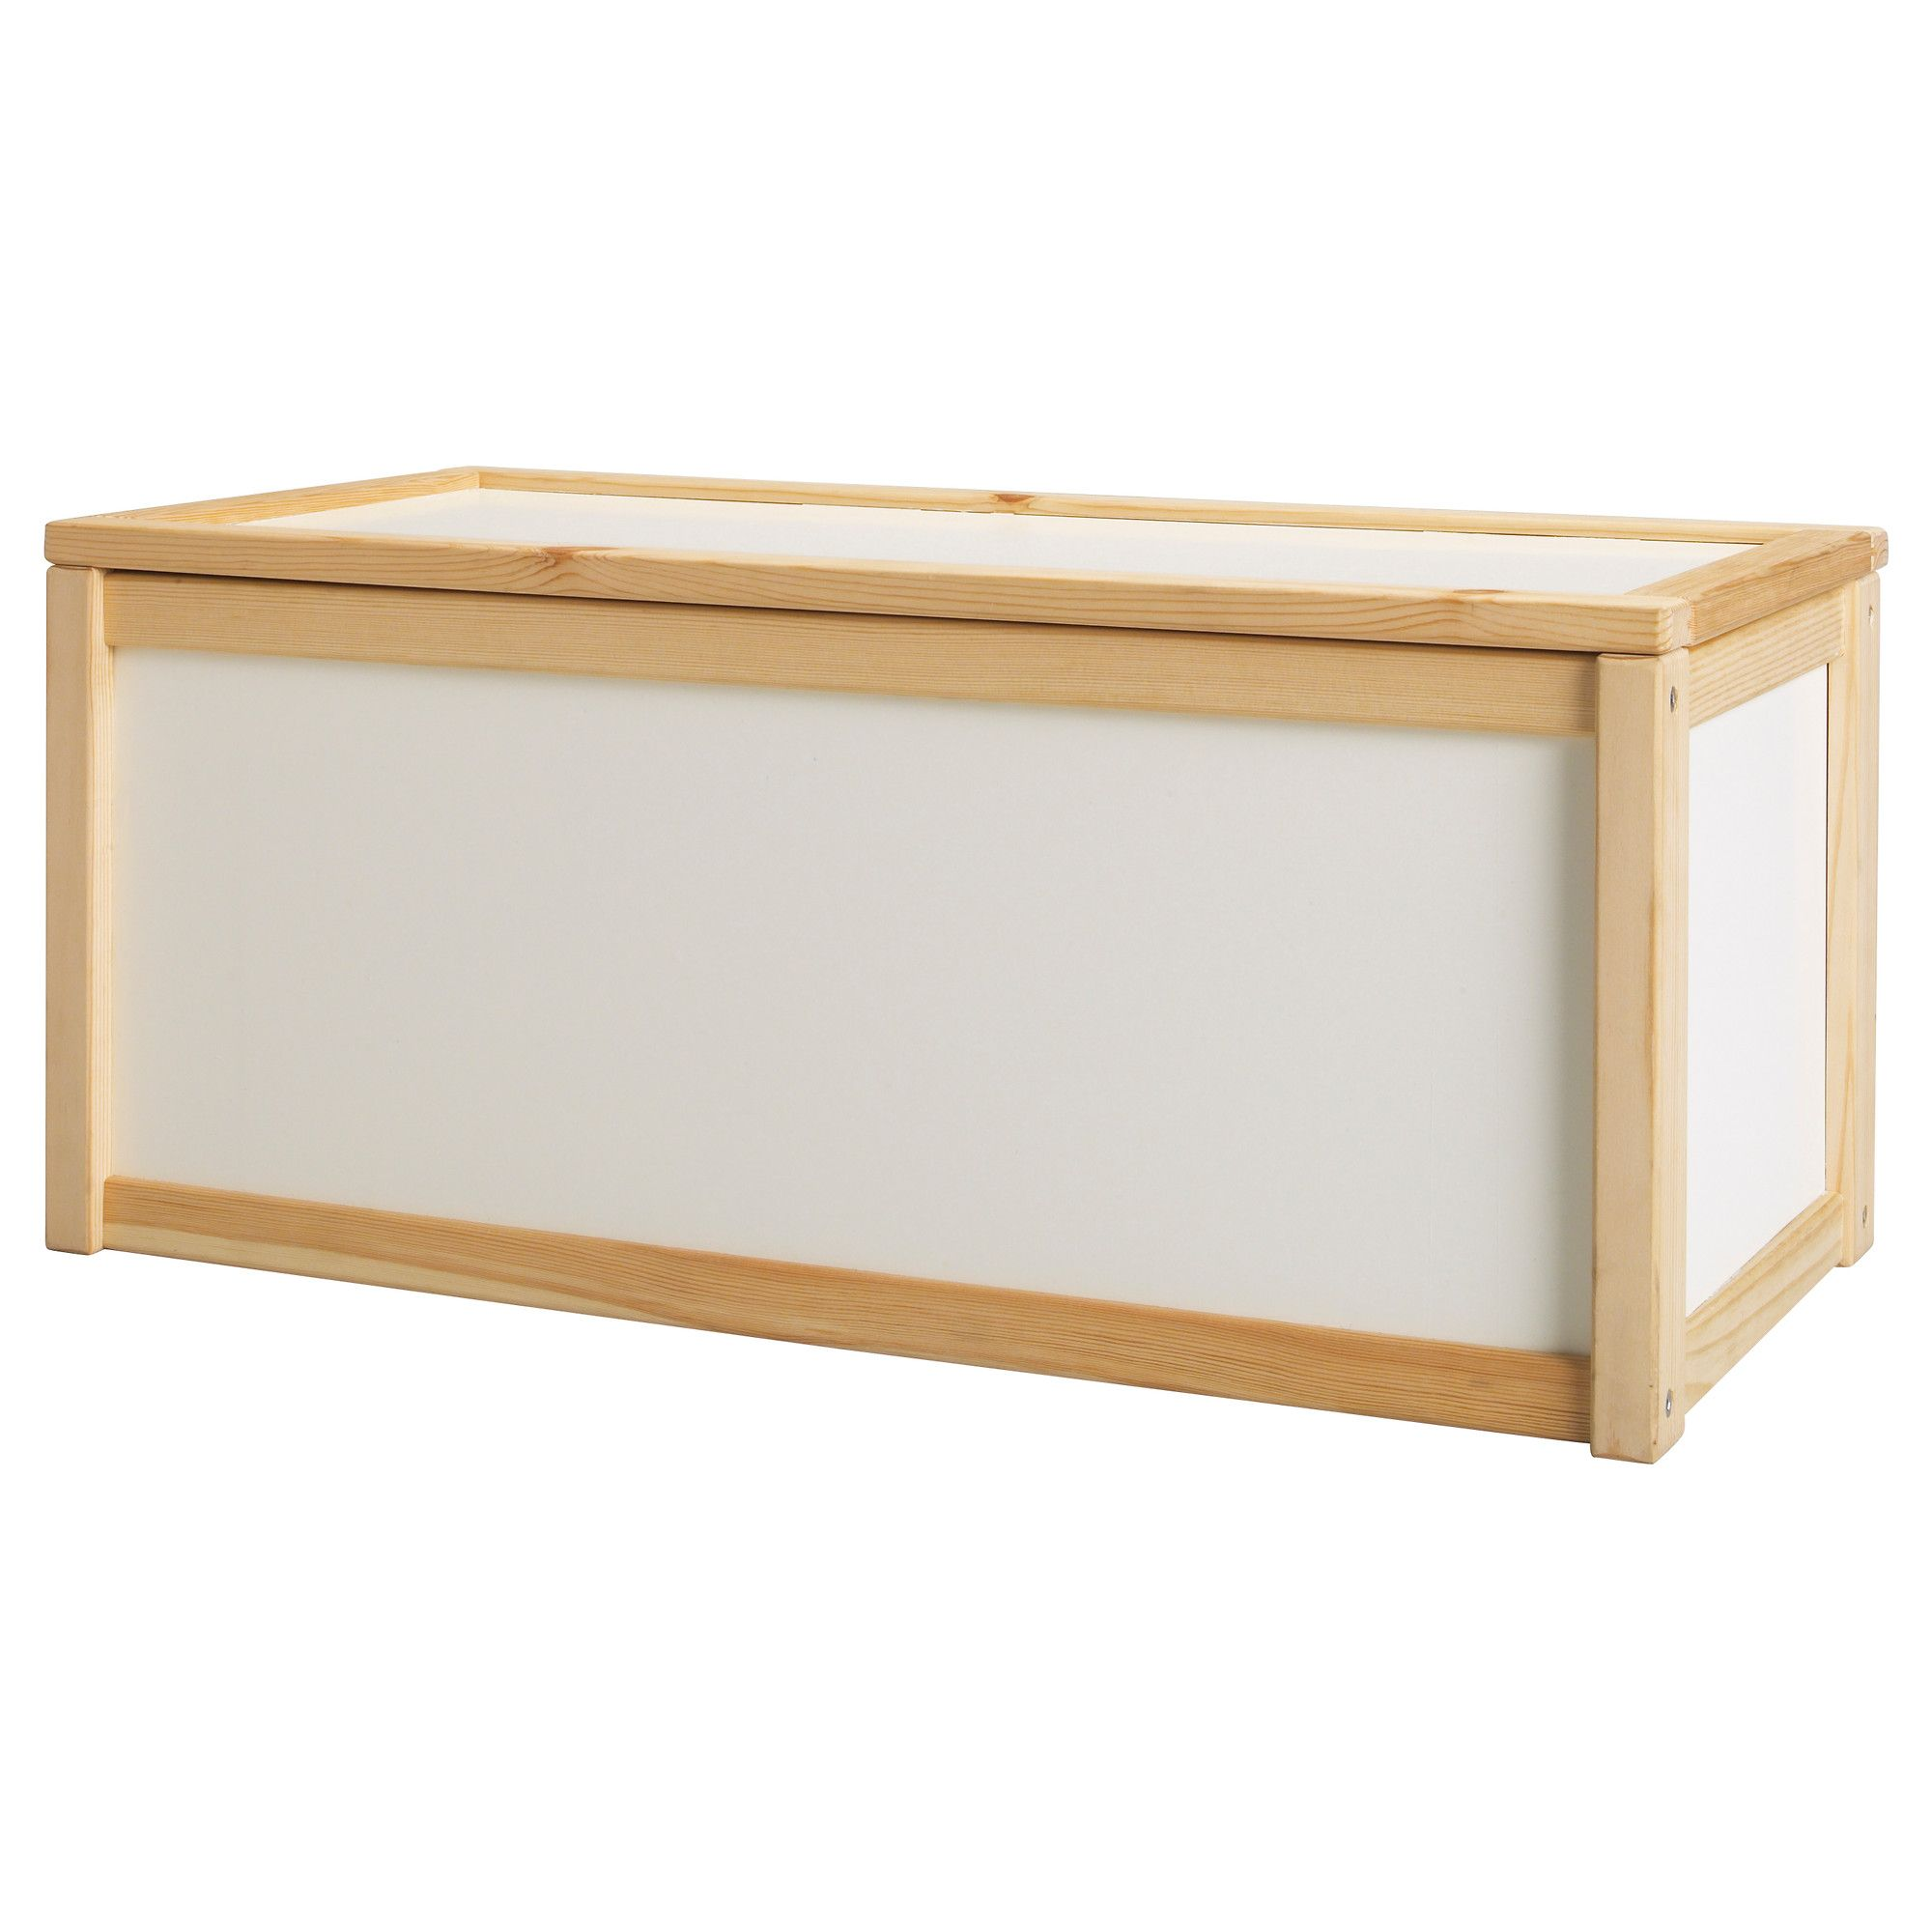 Apa Storage Box Ikea Paint The Wood White And Hide In Corner For Lego